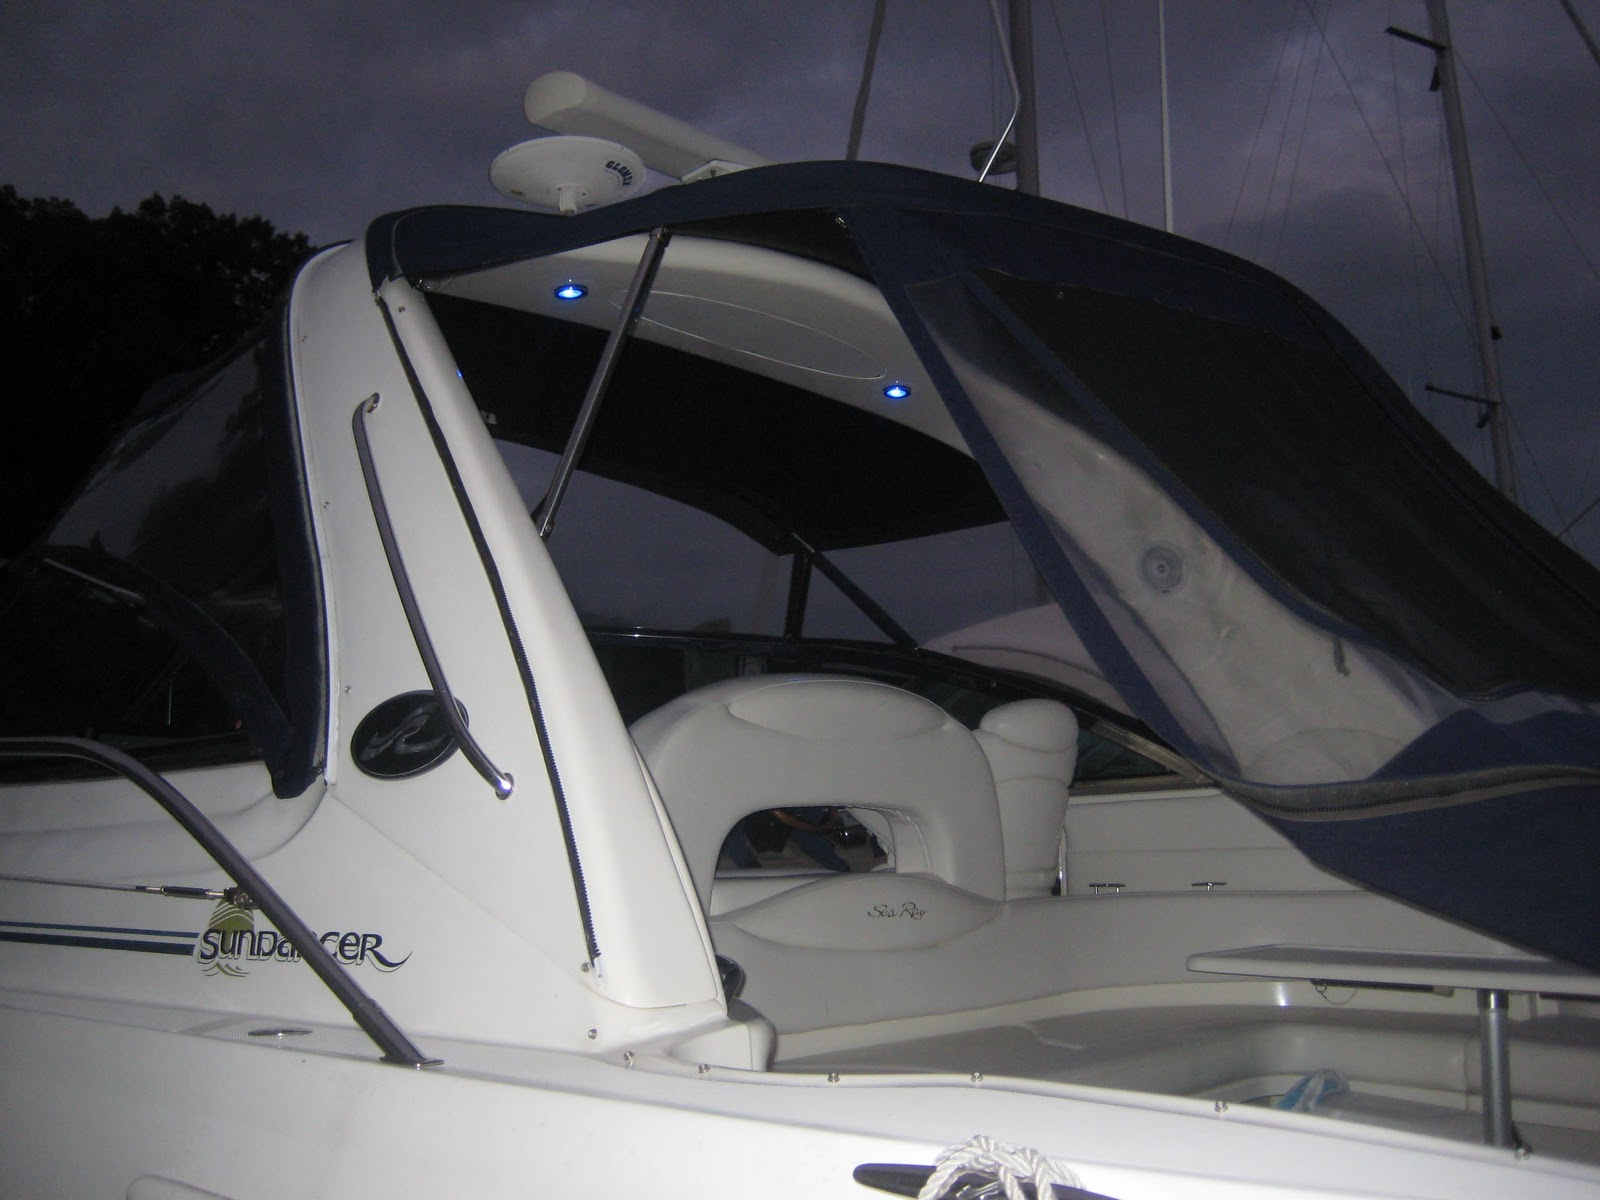 How To Wire Led Lights On A Boat Center Light Wiring Diagram Blue Upgrade Lighting My Life Rh Myboatlife Com In Your